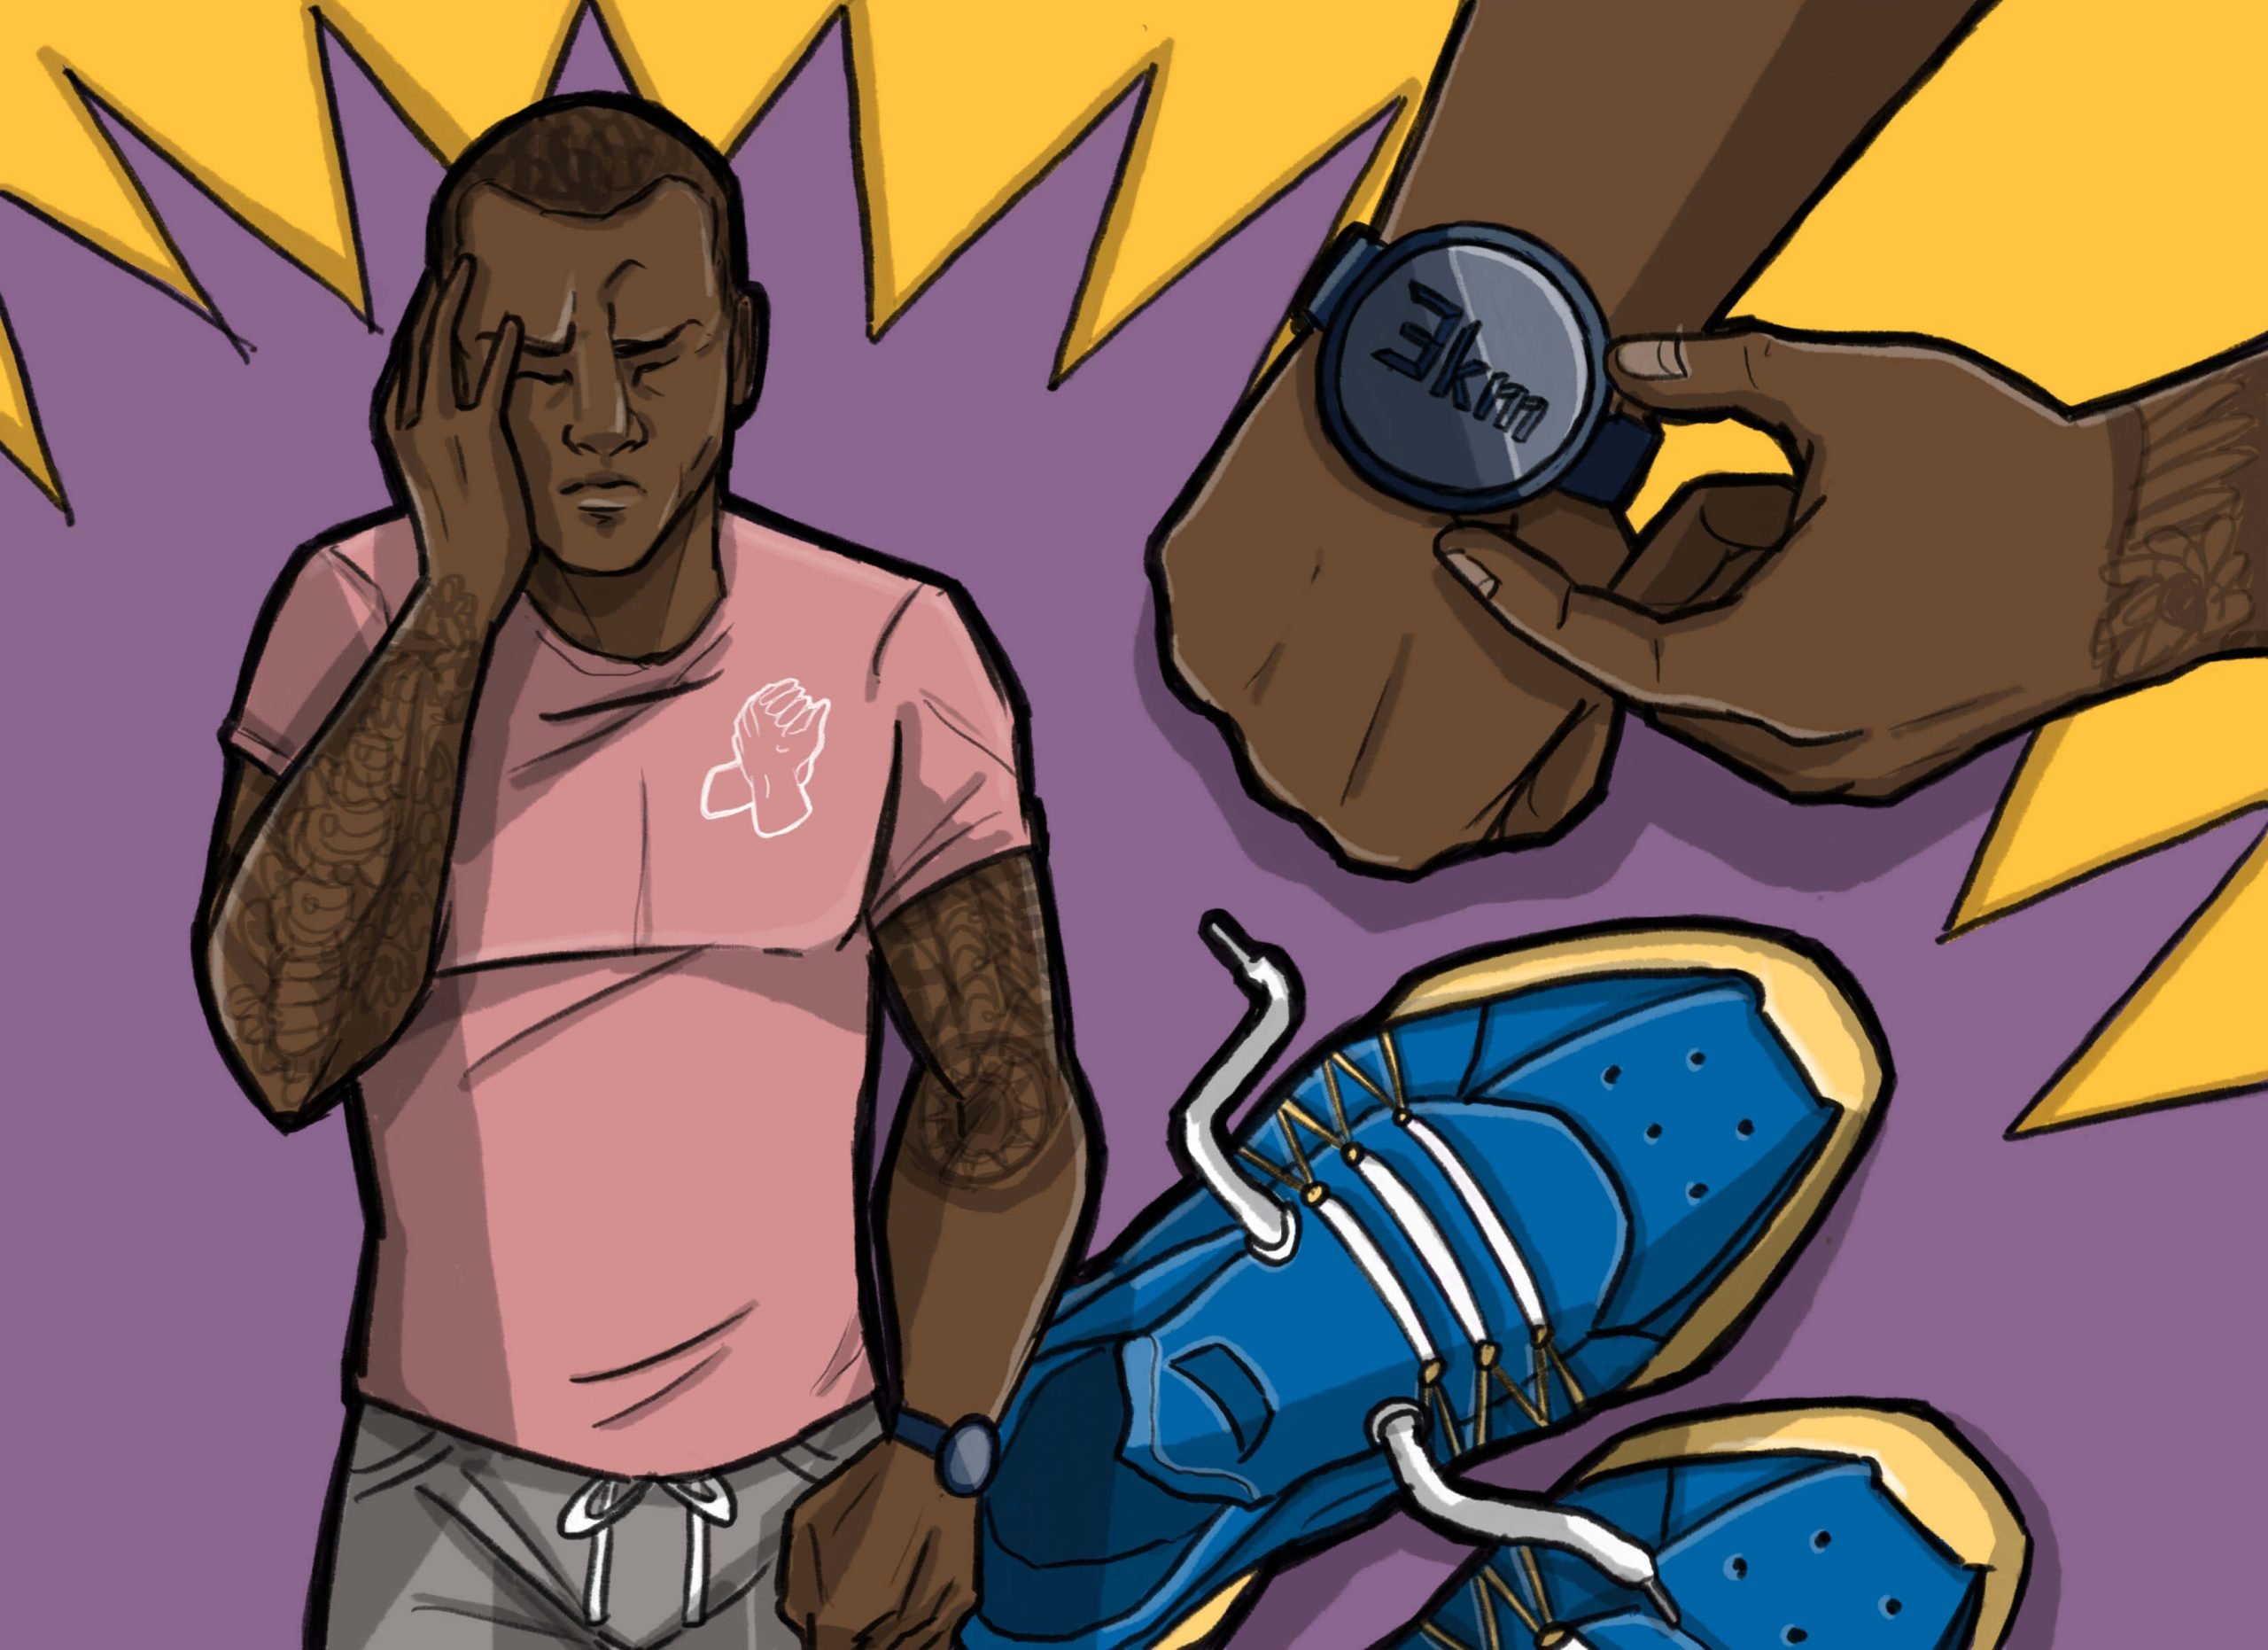 This is a horizontal drawing of a black man getting anxiety and going running